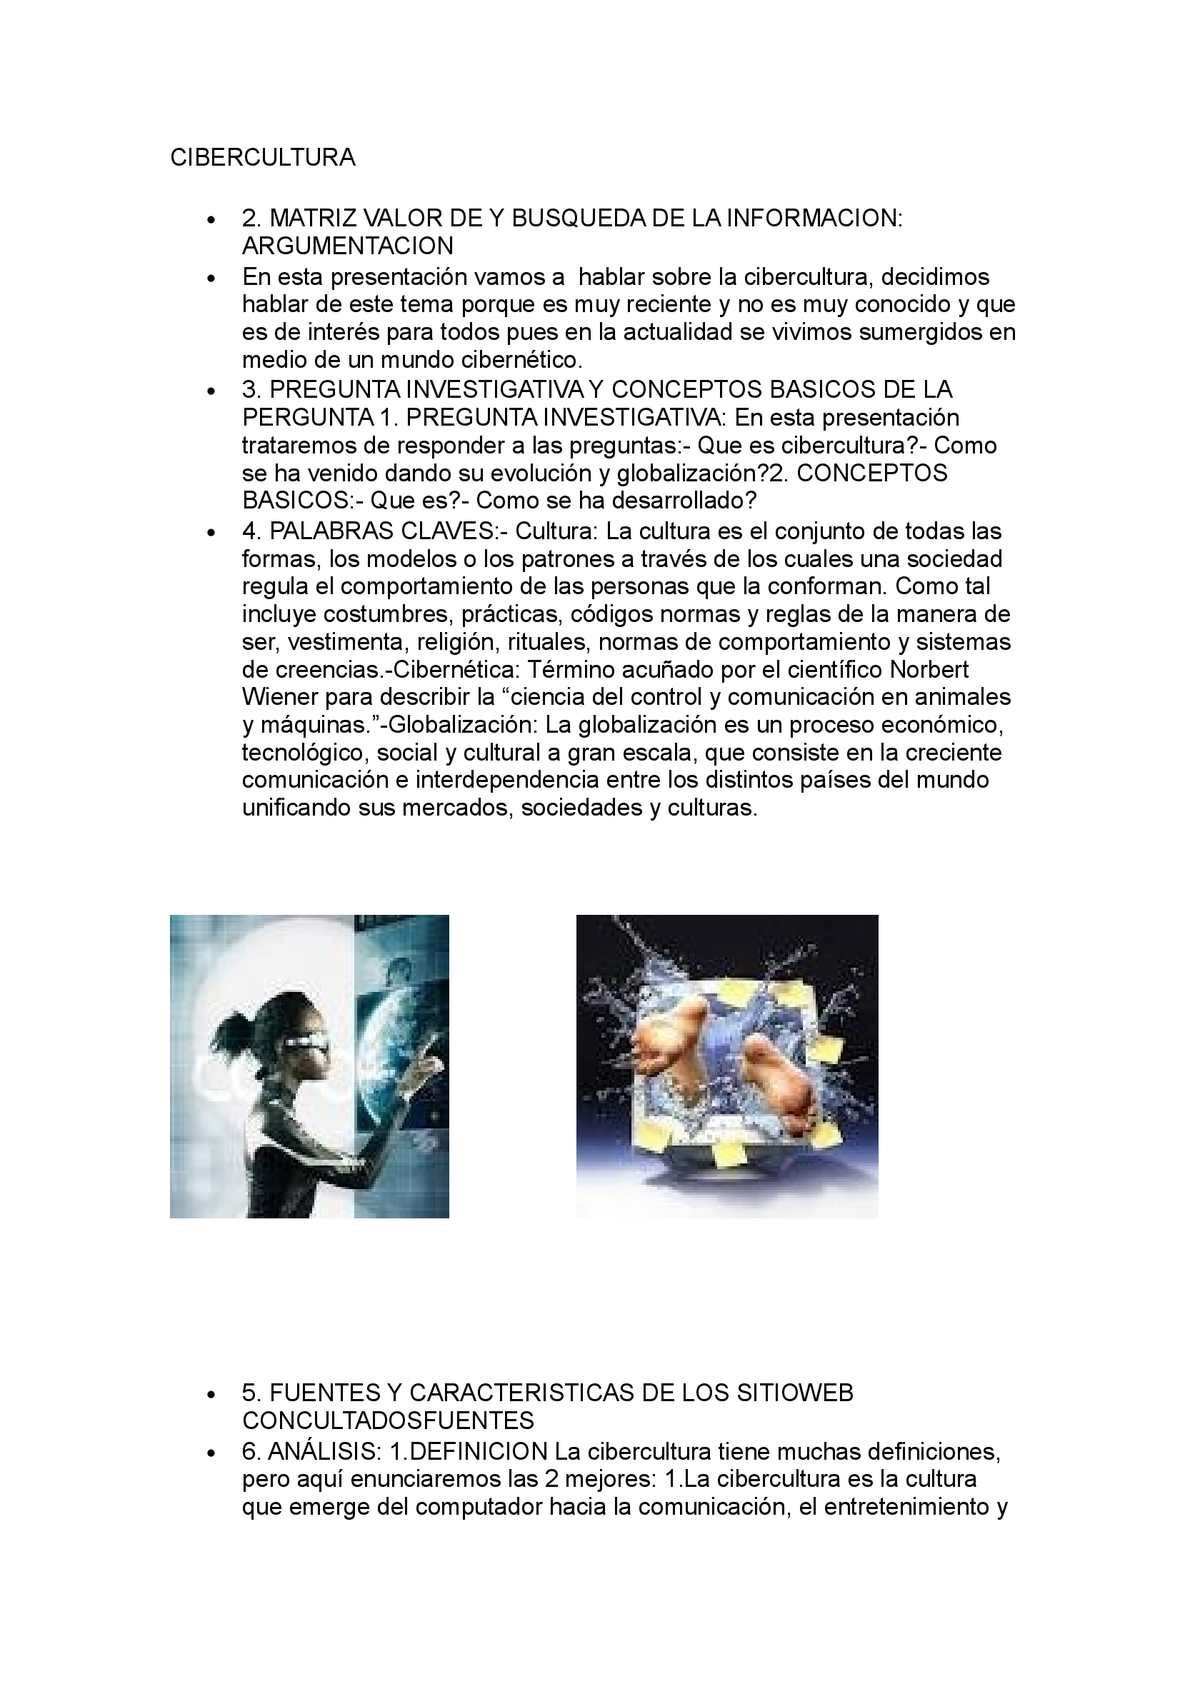 CONCEPTO DE CIBERCULTURA PDF DOWNLOAD